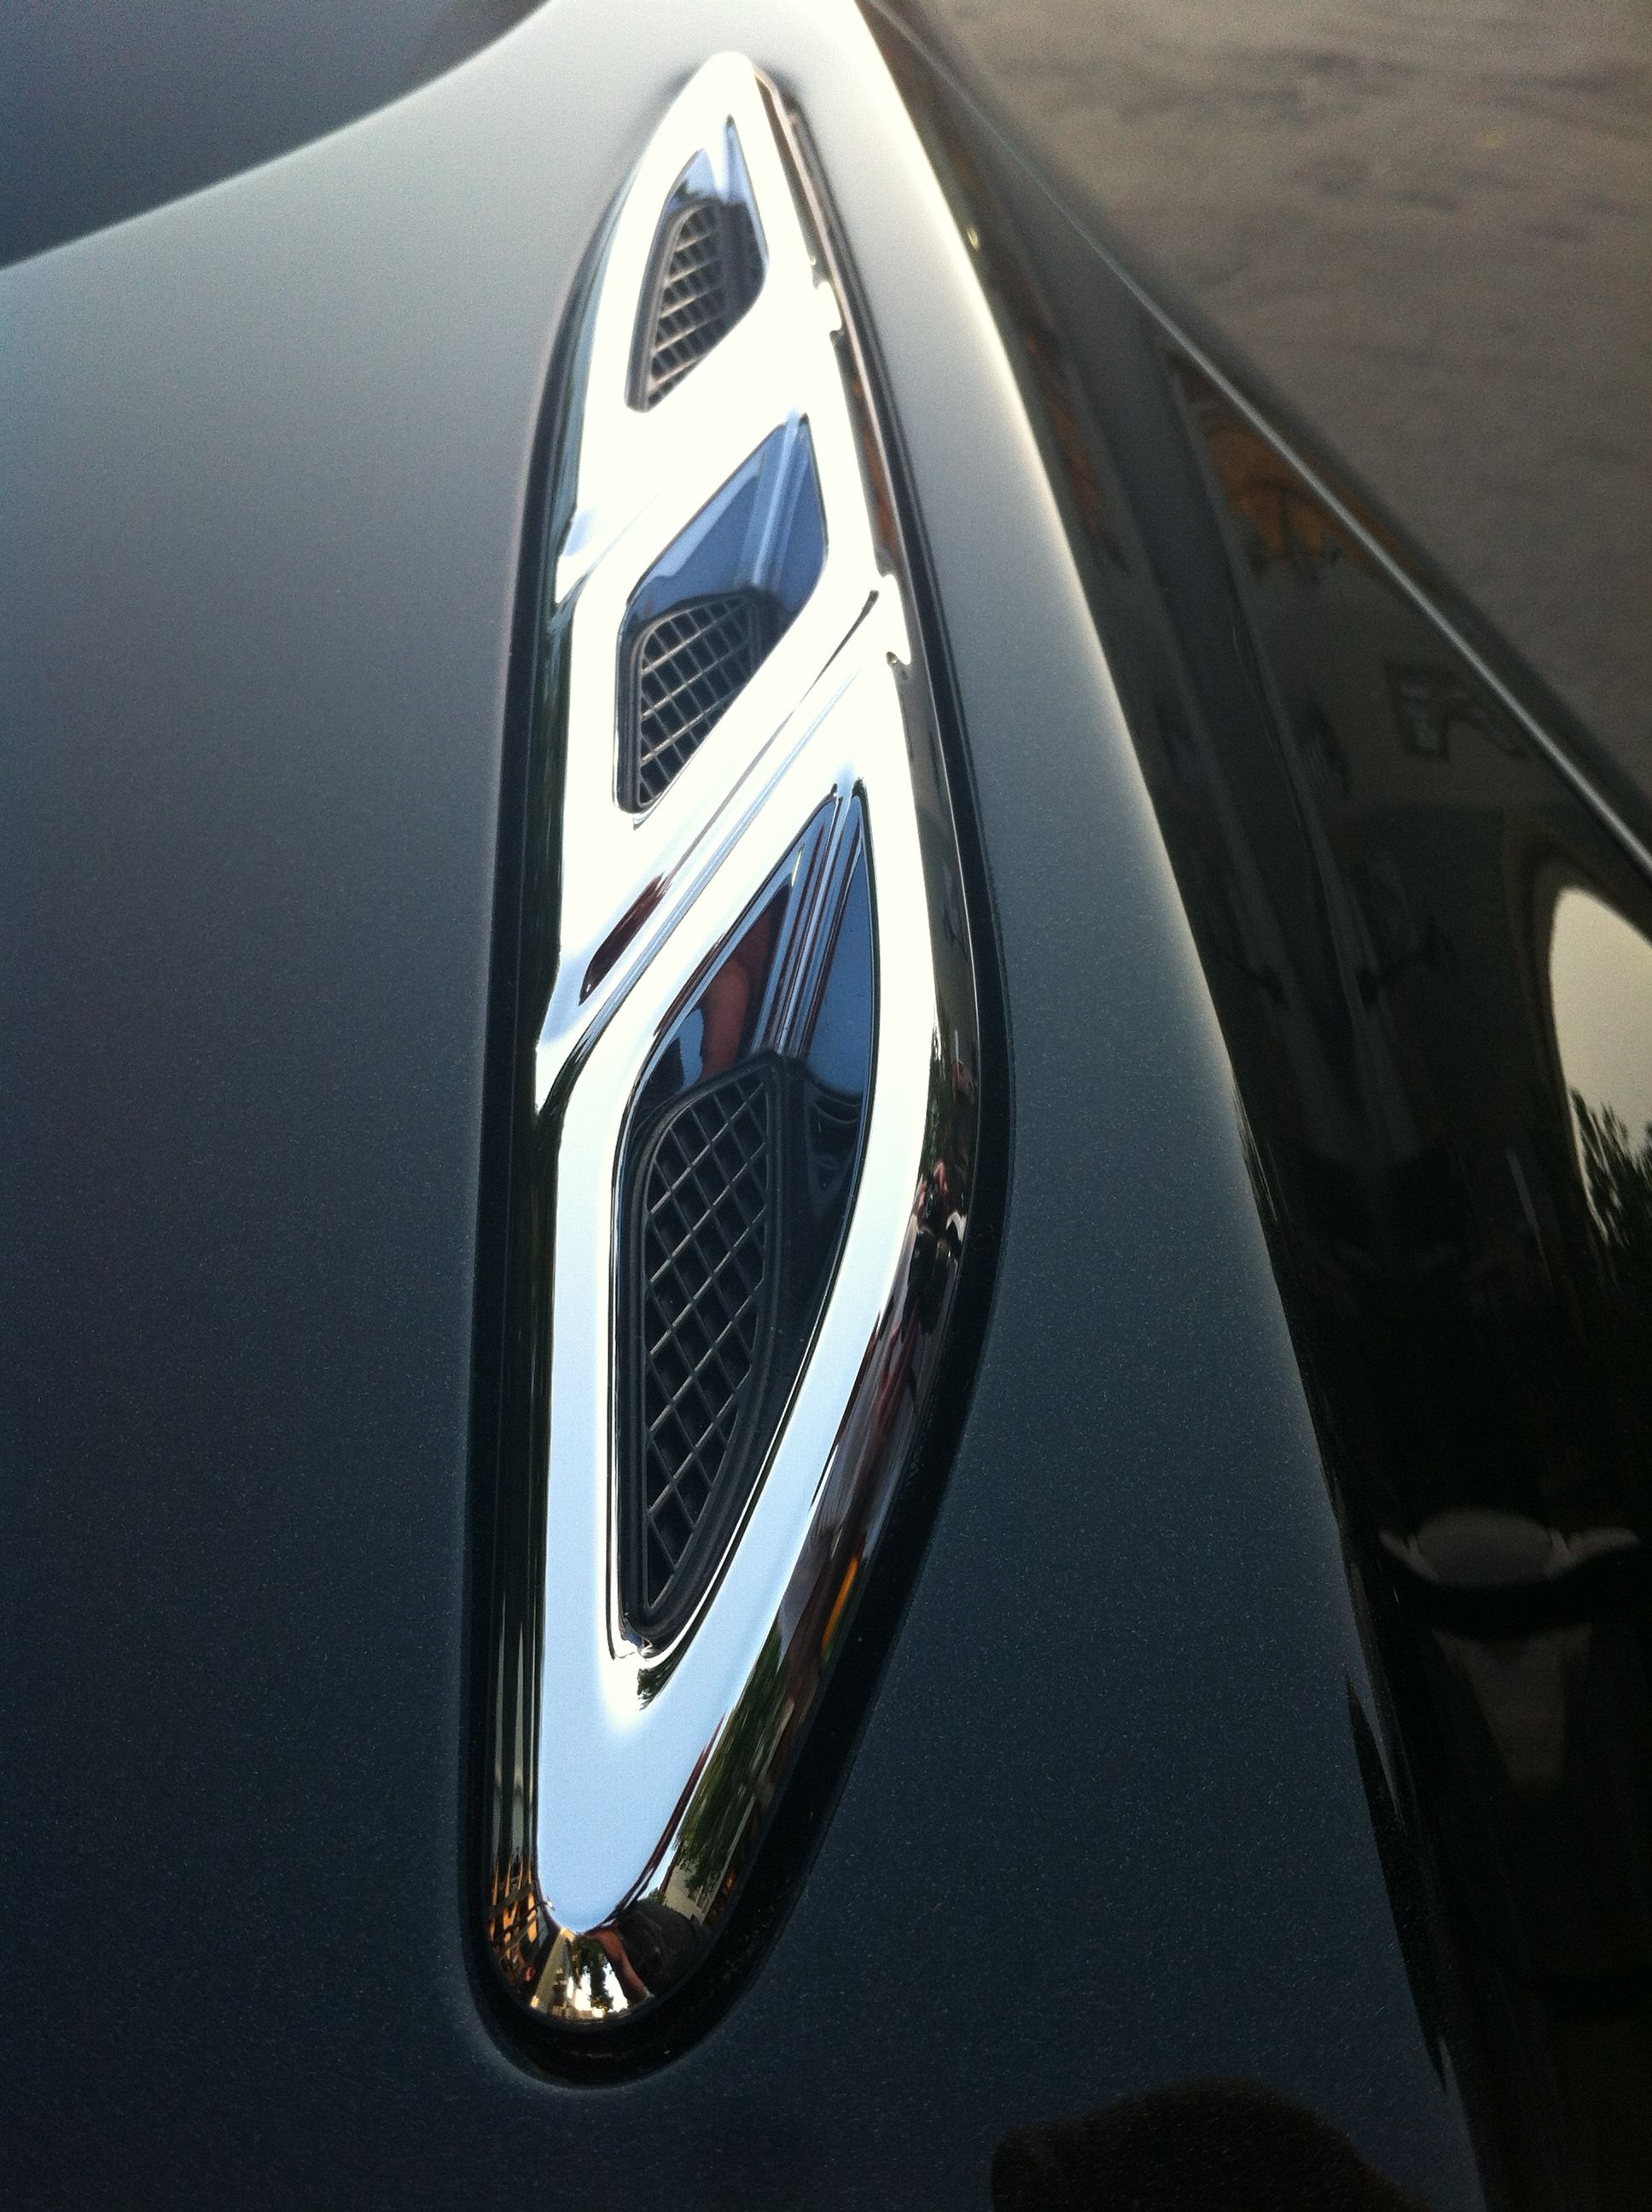 turbo wheel s the lead regal review vehicle buick buicks gs news performance